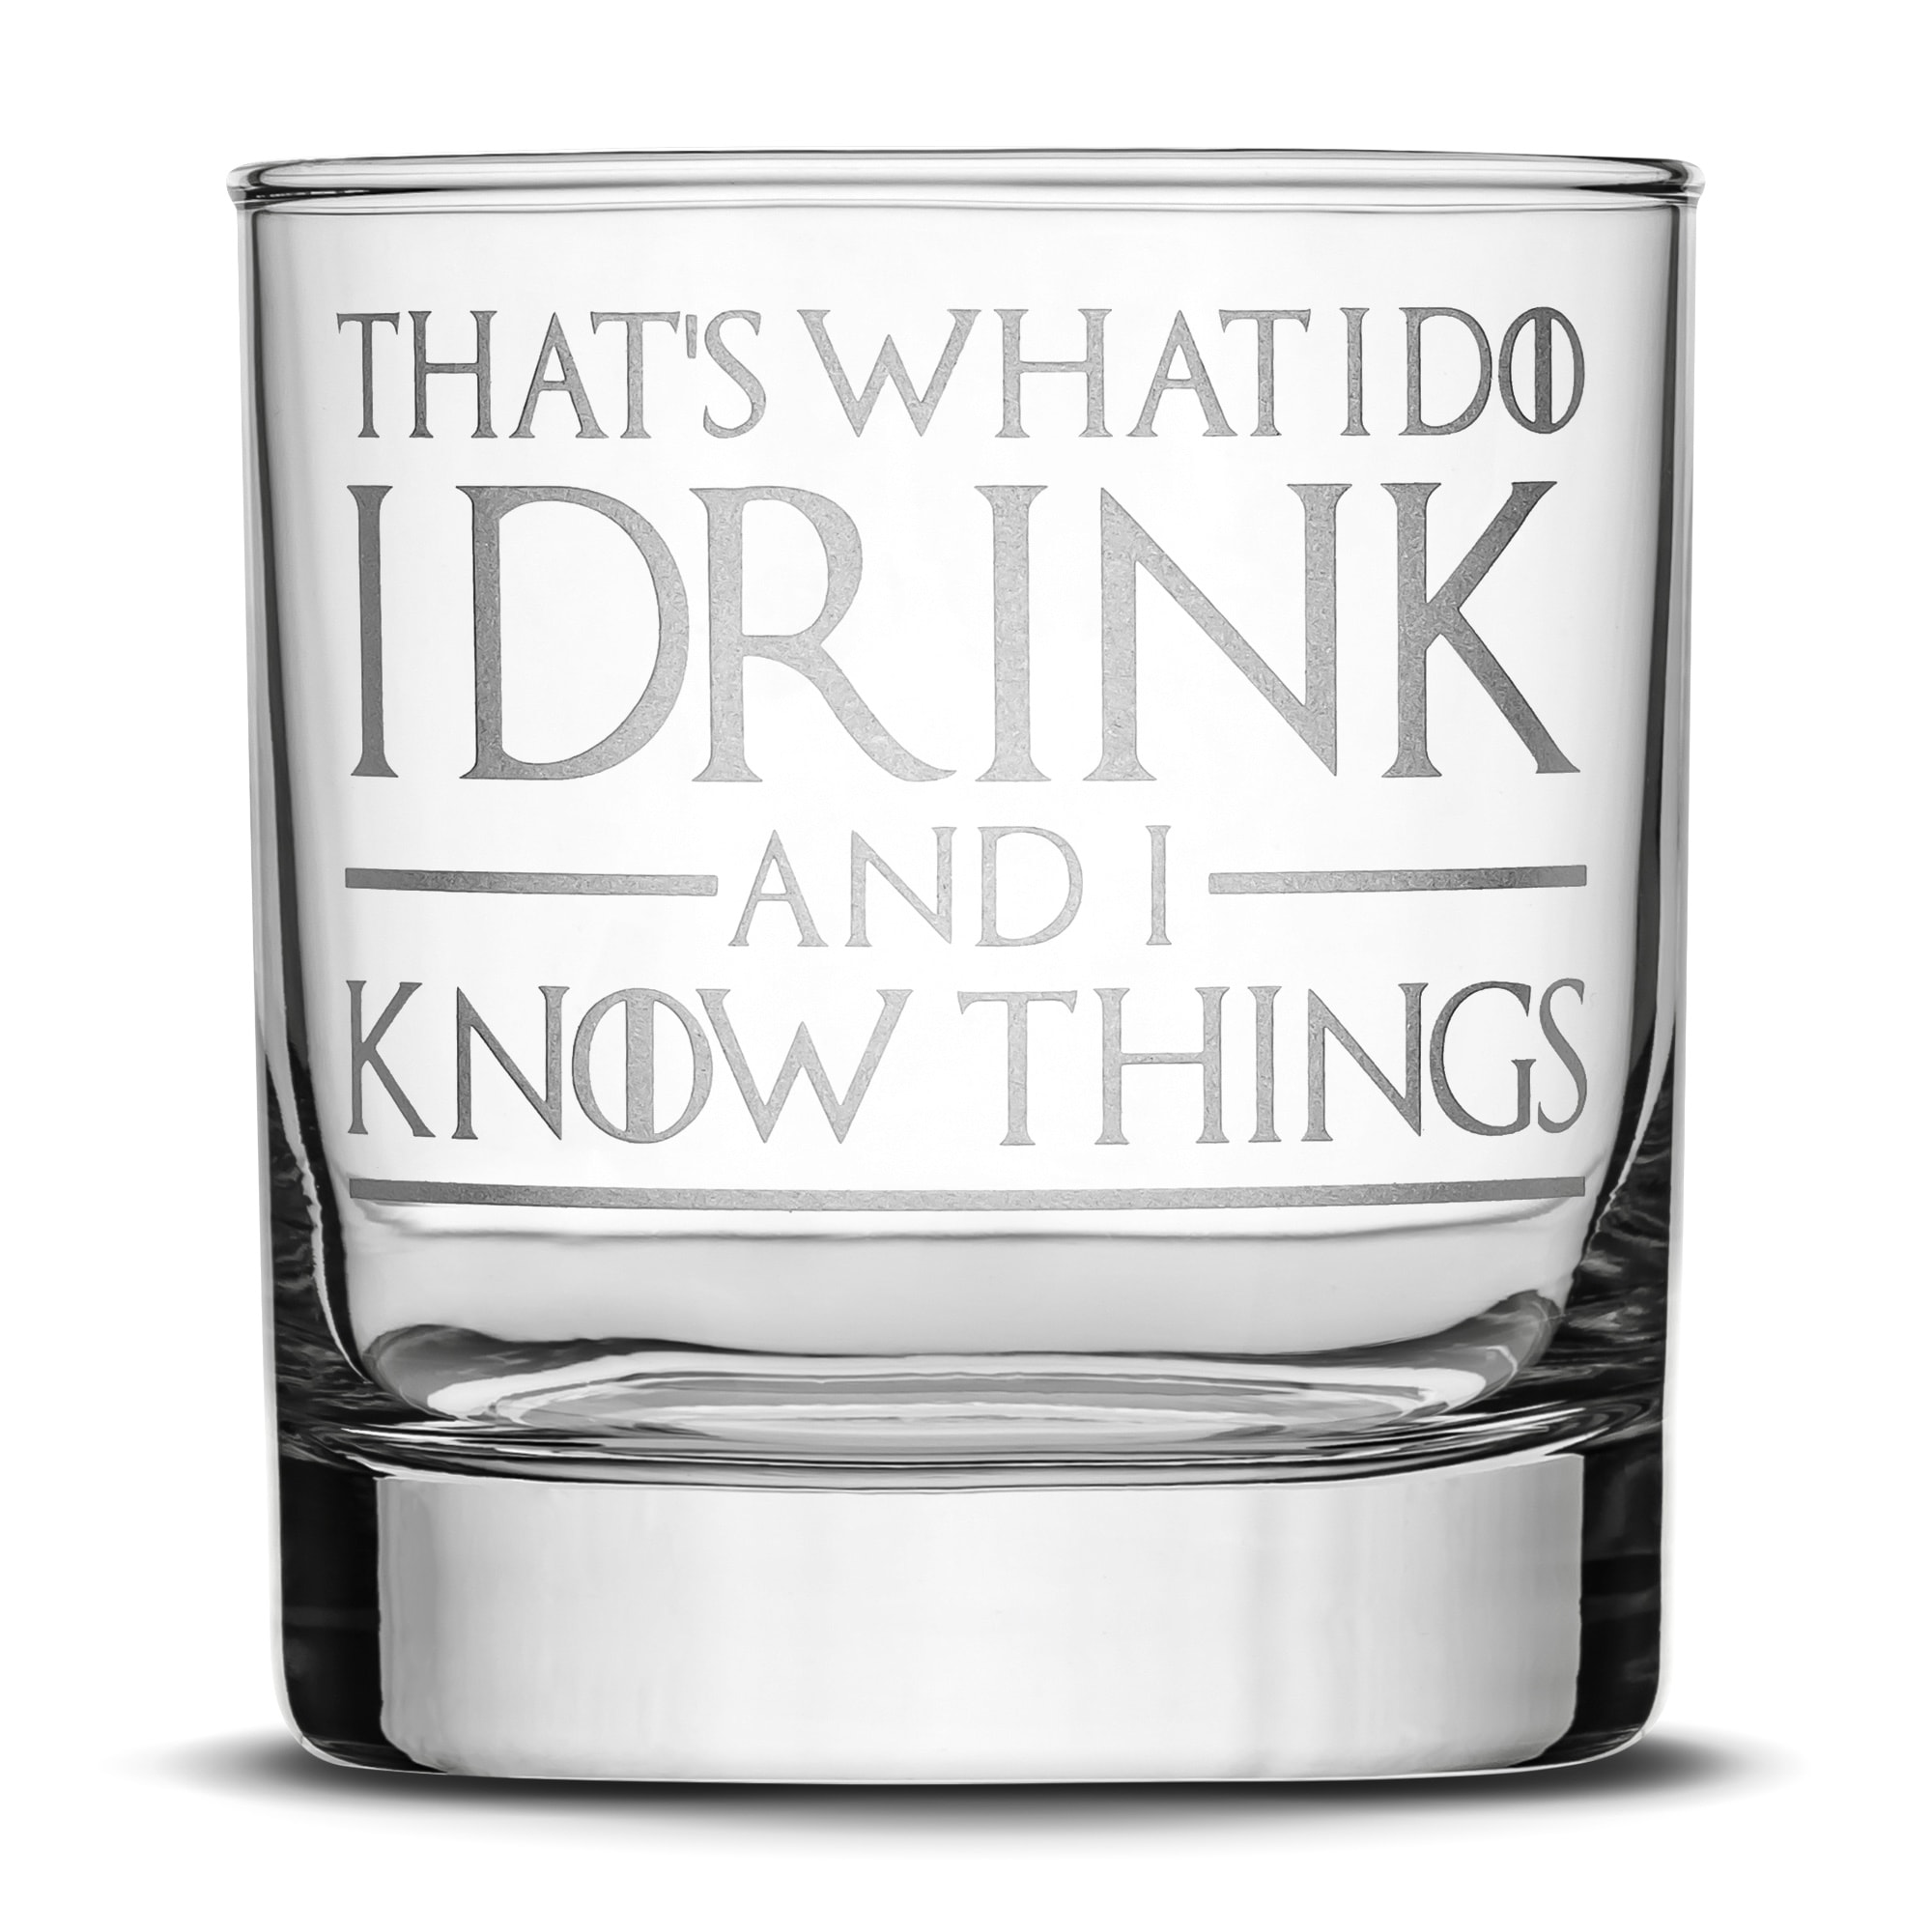 Premium Game of Thrones Whiskey Glass, Thats What I Do I Drink and I Know Things, Hand Etched 10oz Rocks Glass, Made in USA, Highball Gifts, Sand Carved by Integrity Bottles